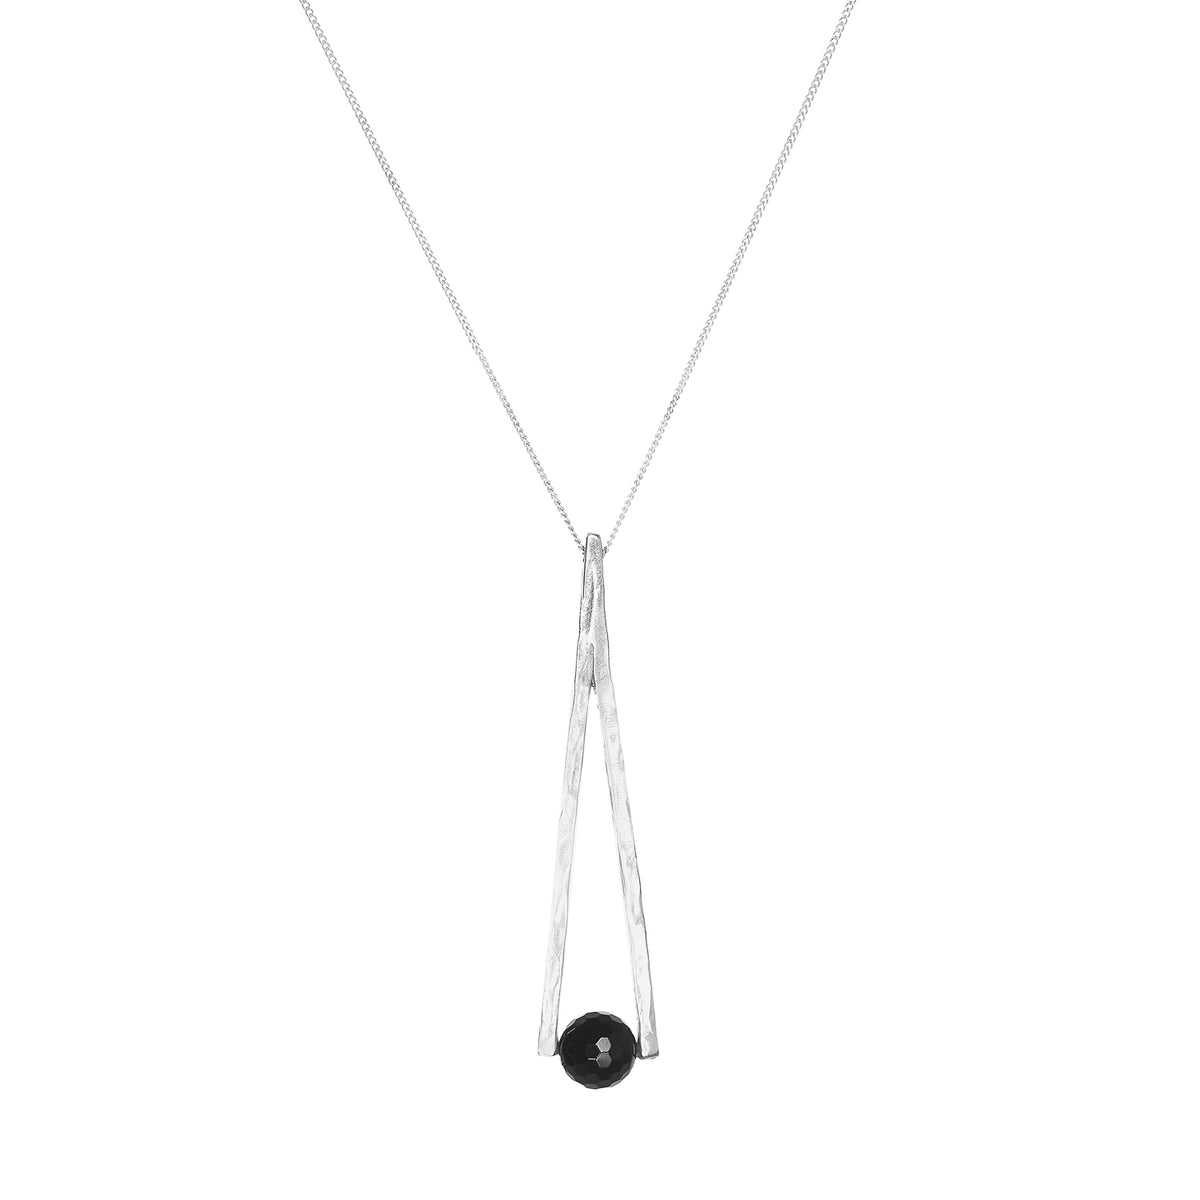 VALANCE NECKLACE SILVER/ONYX